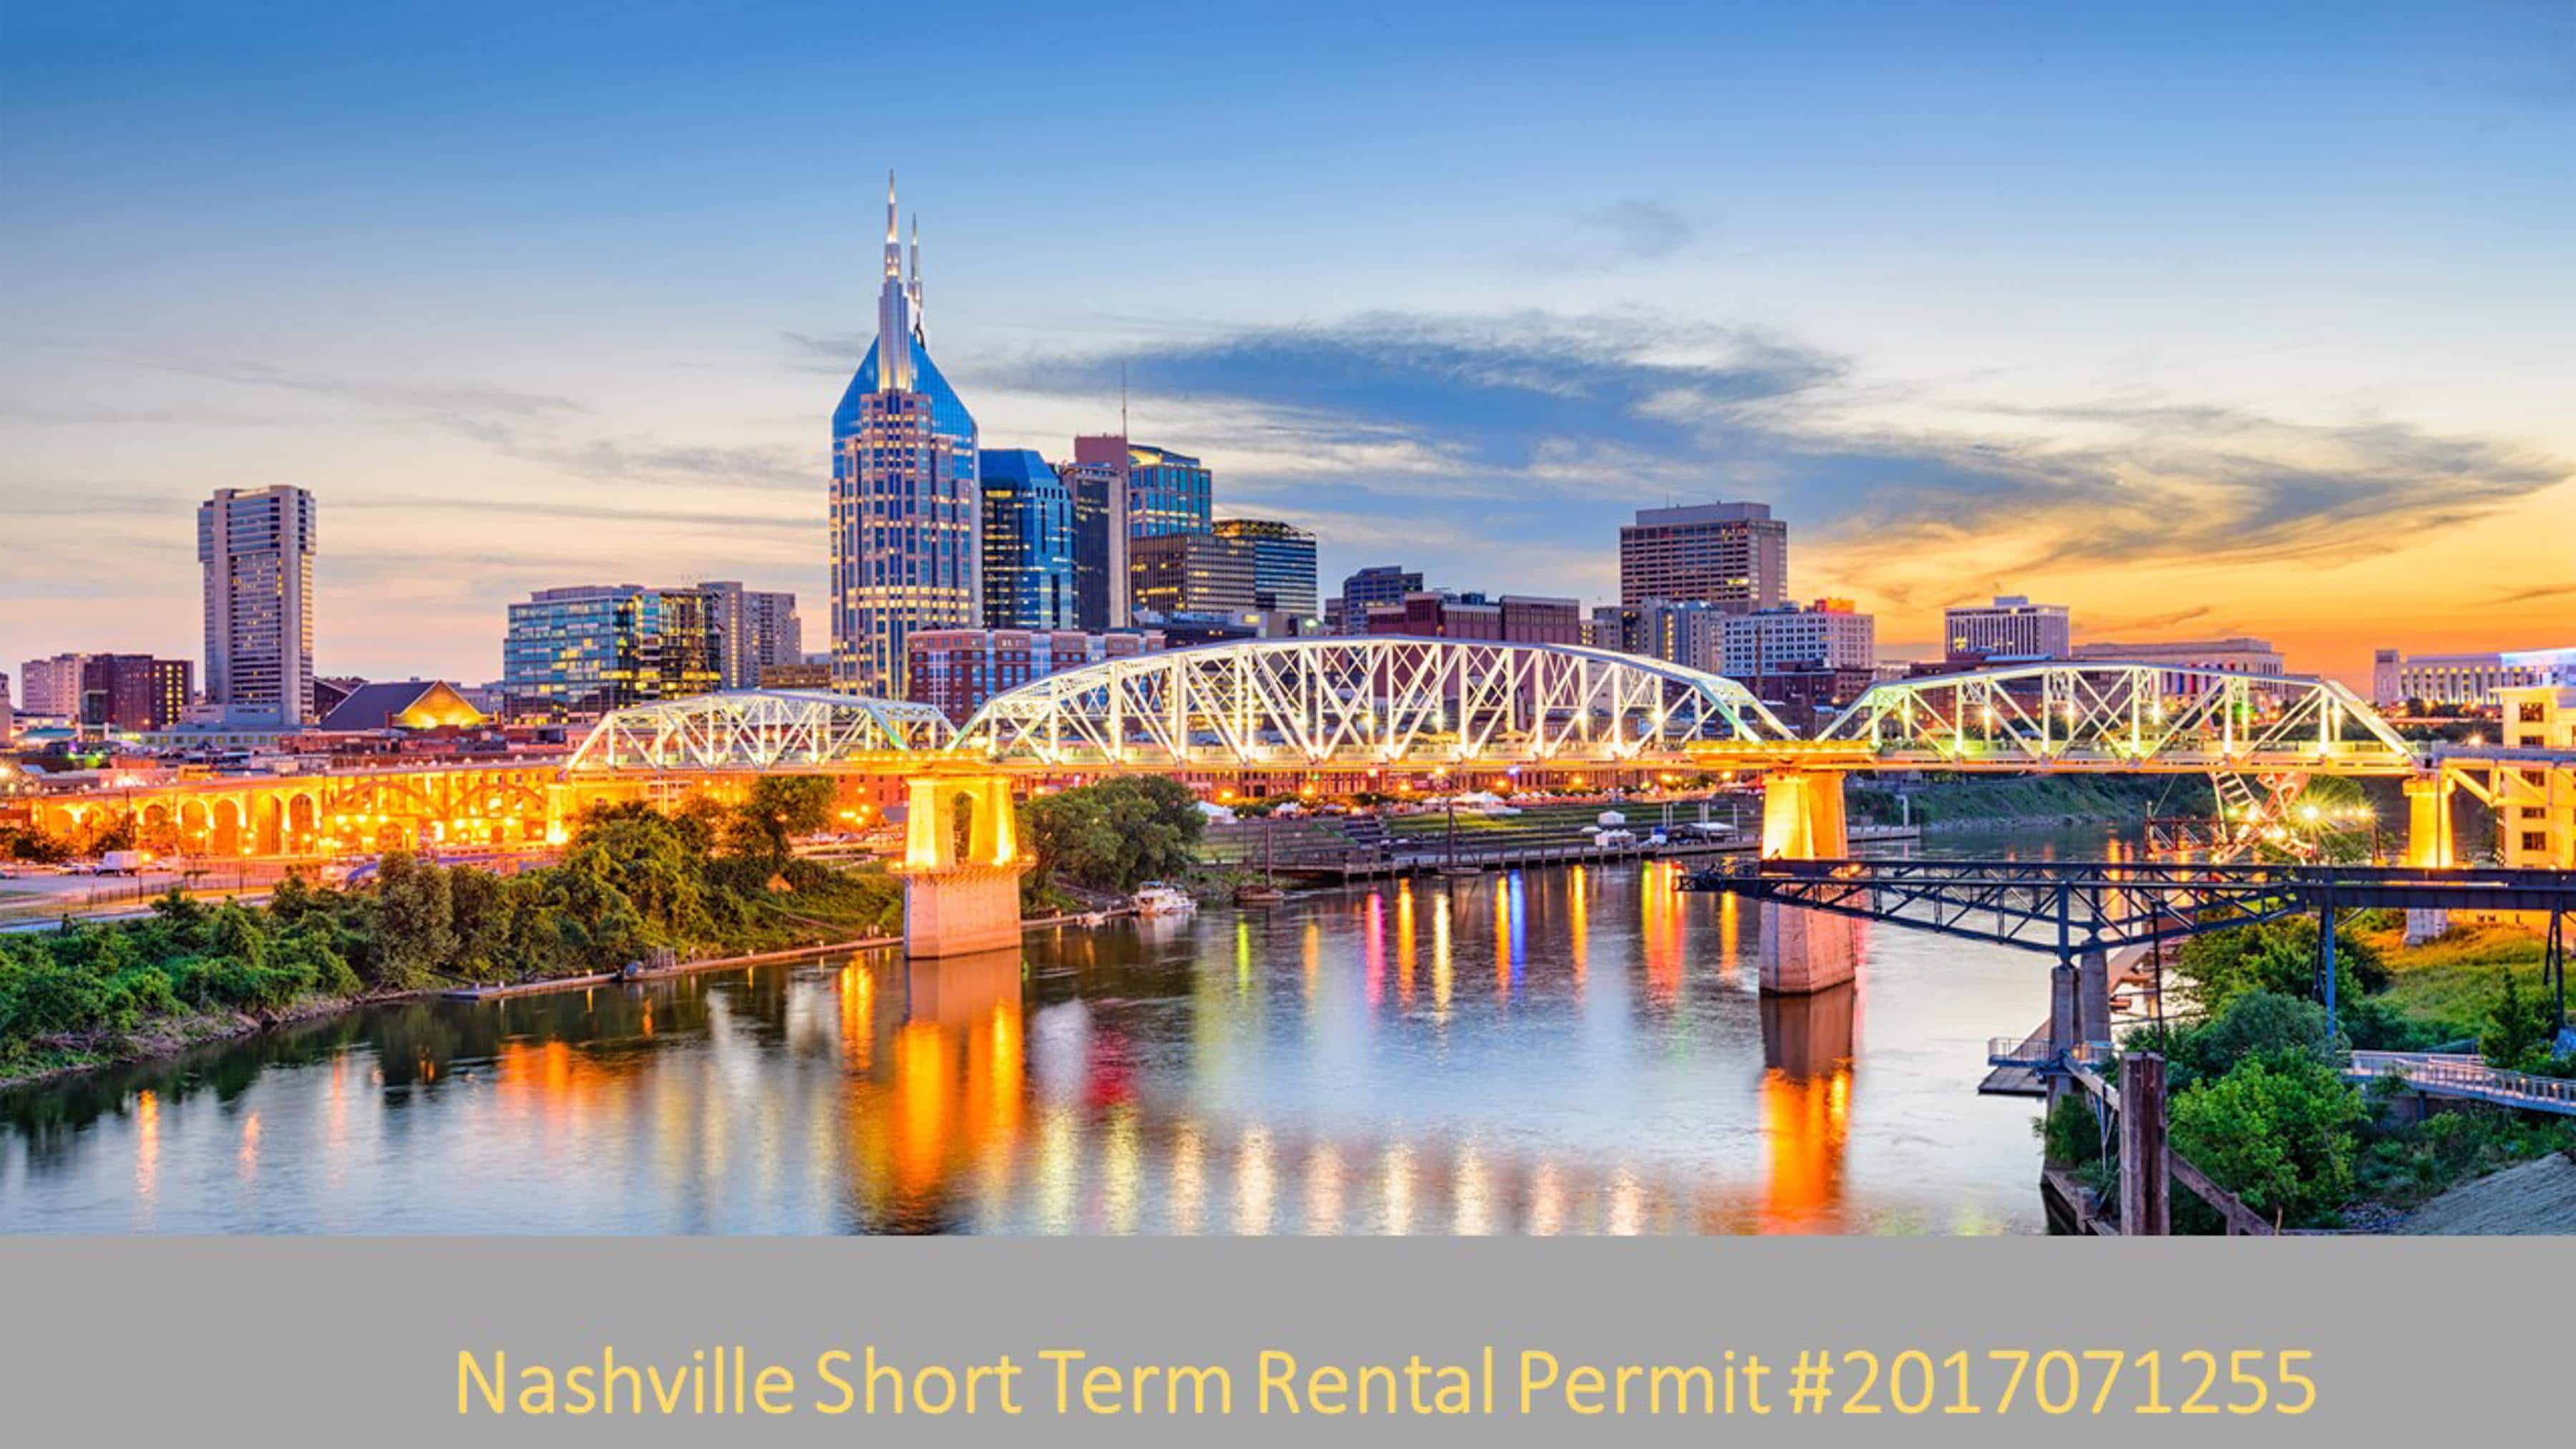 Just 3 miles from downtown Nashville for music, dining, and shopping.